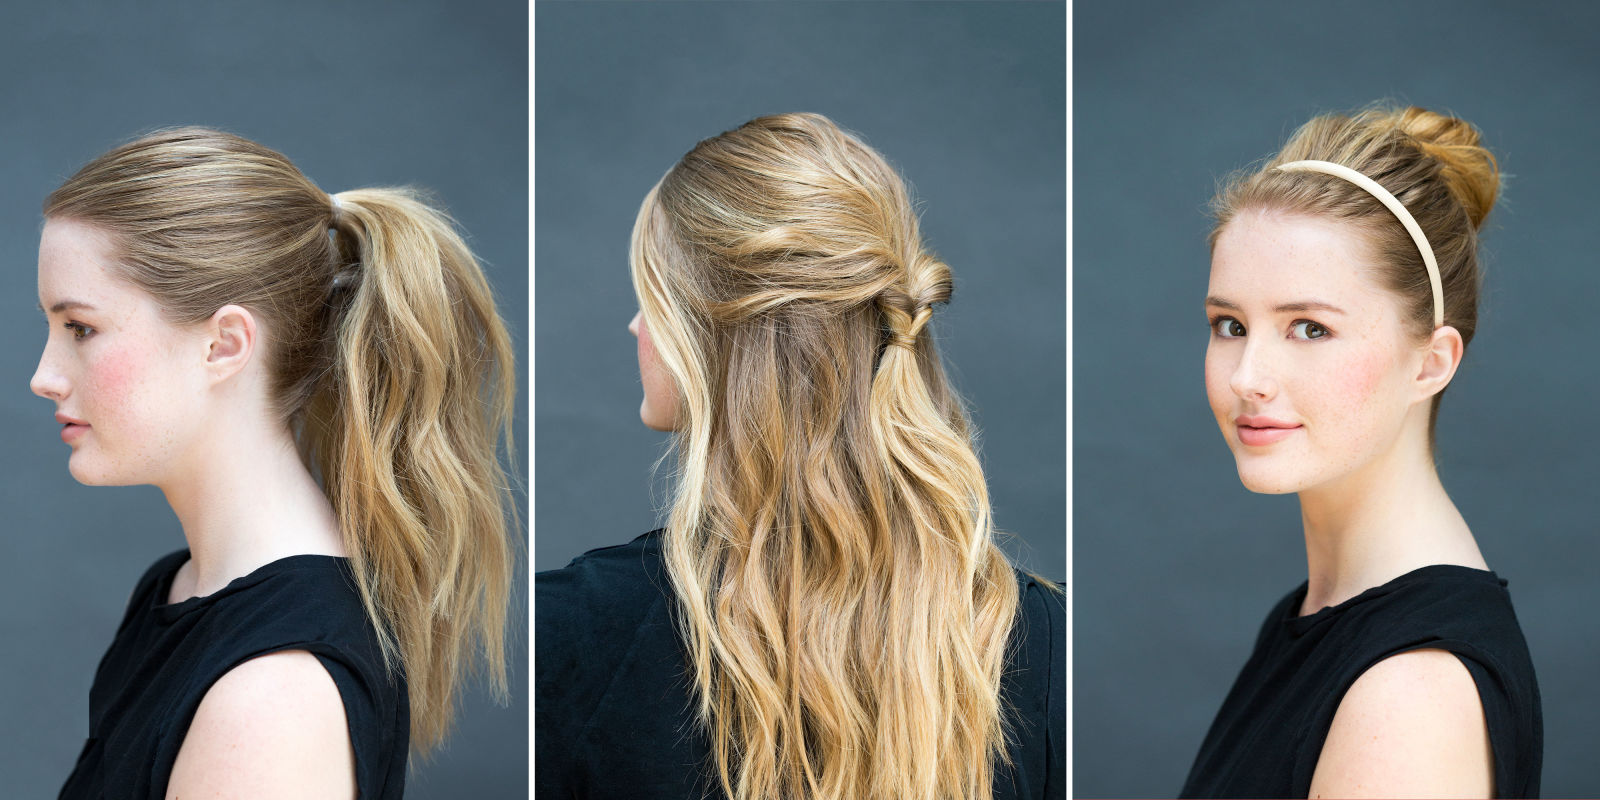 Peachy 10 Easy Hairstyles You Can Do In 10 Seconds Diy Hairstyles Short Hairstyles Gunalazisus